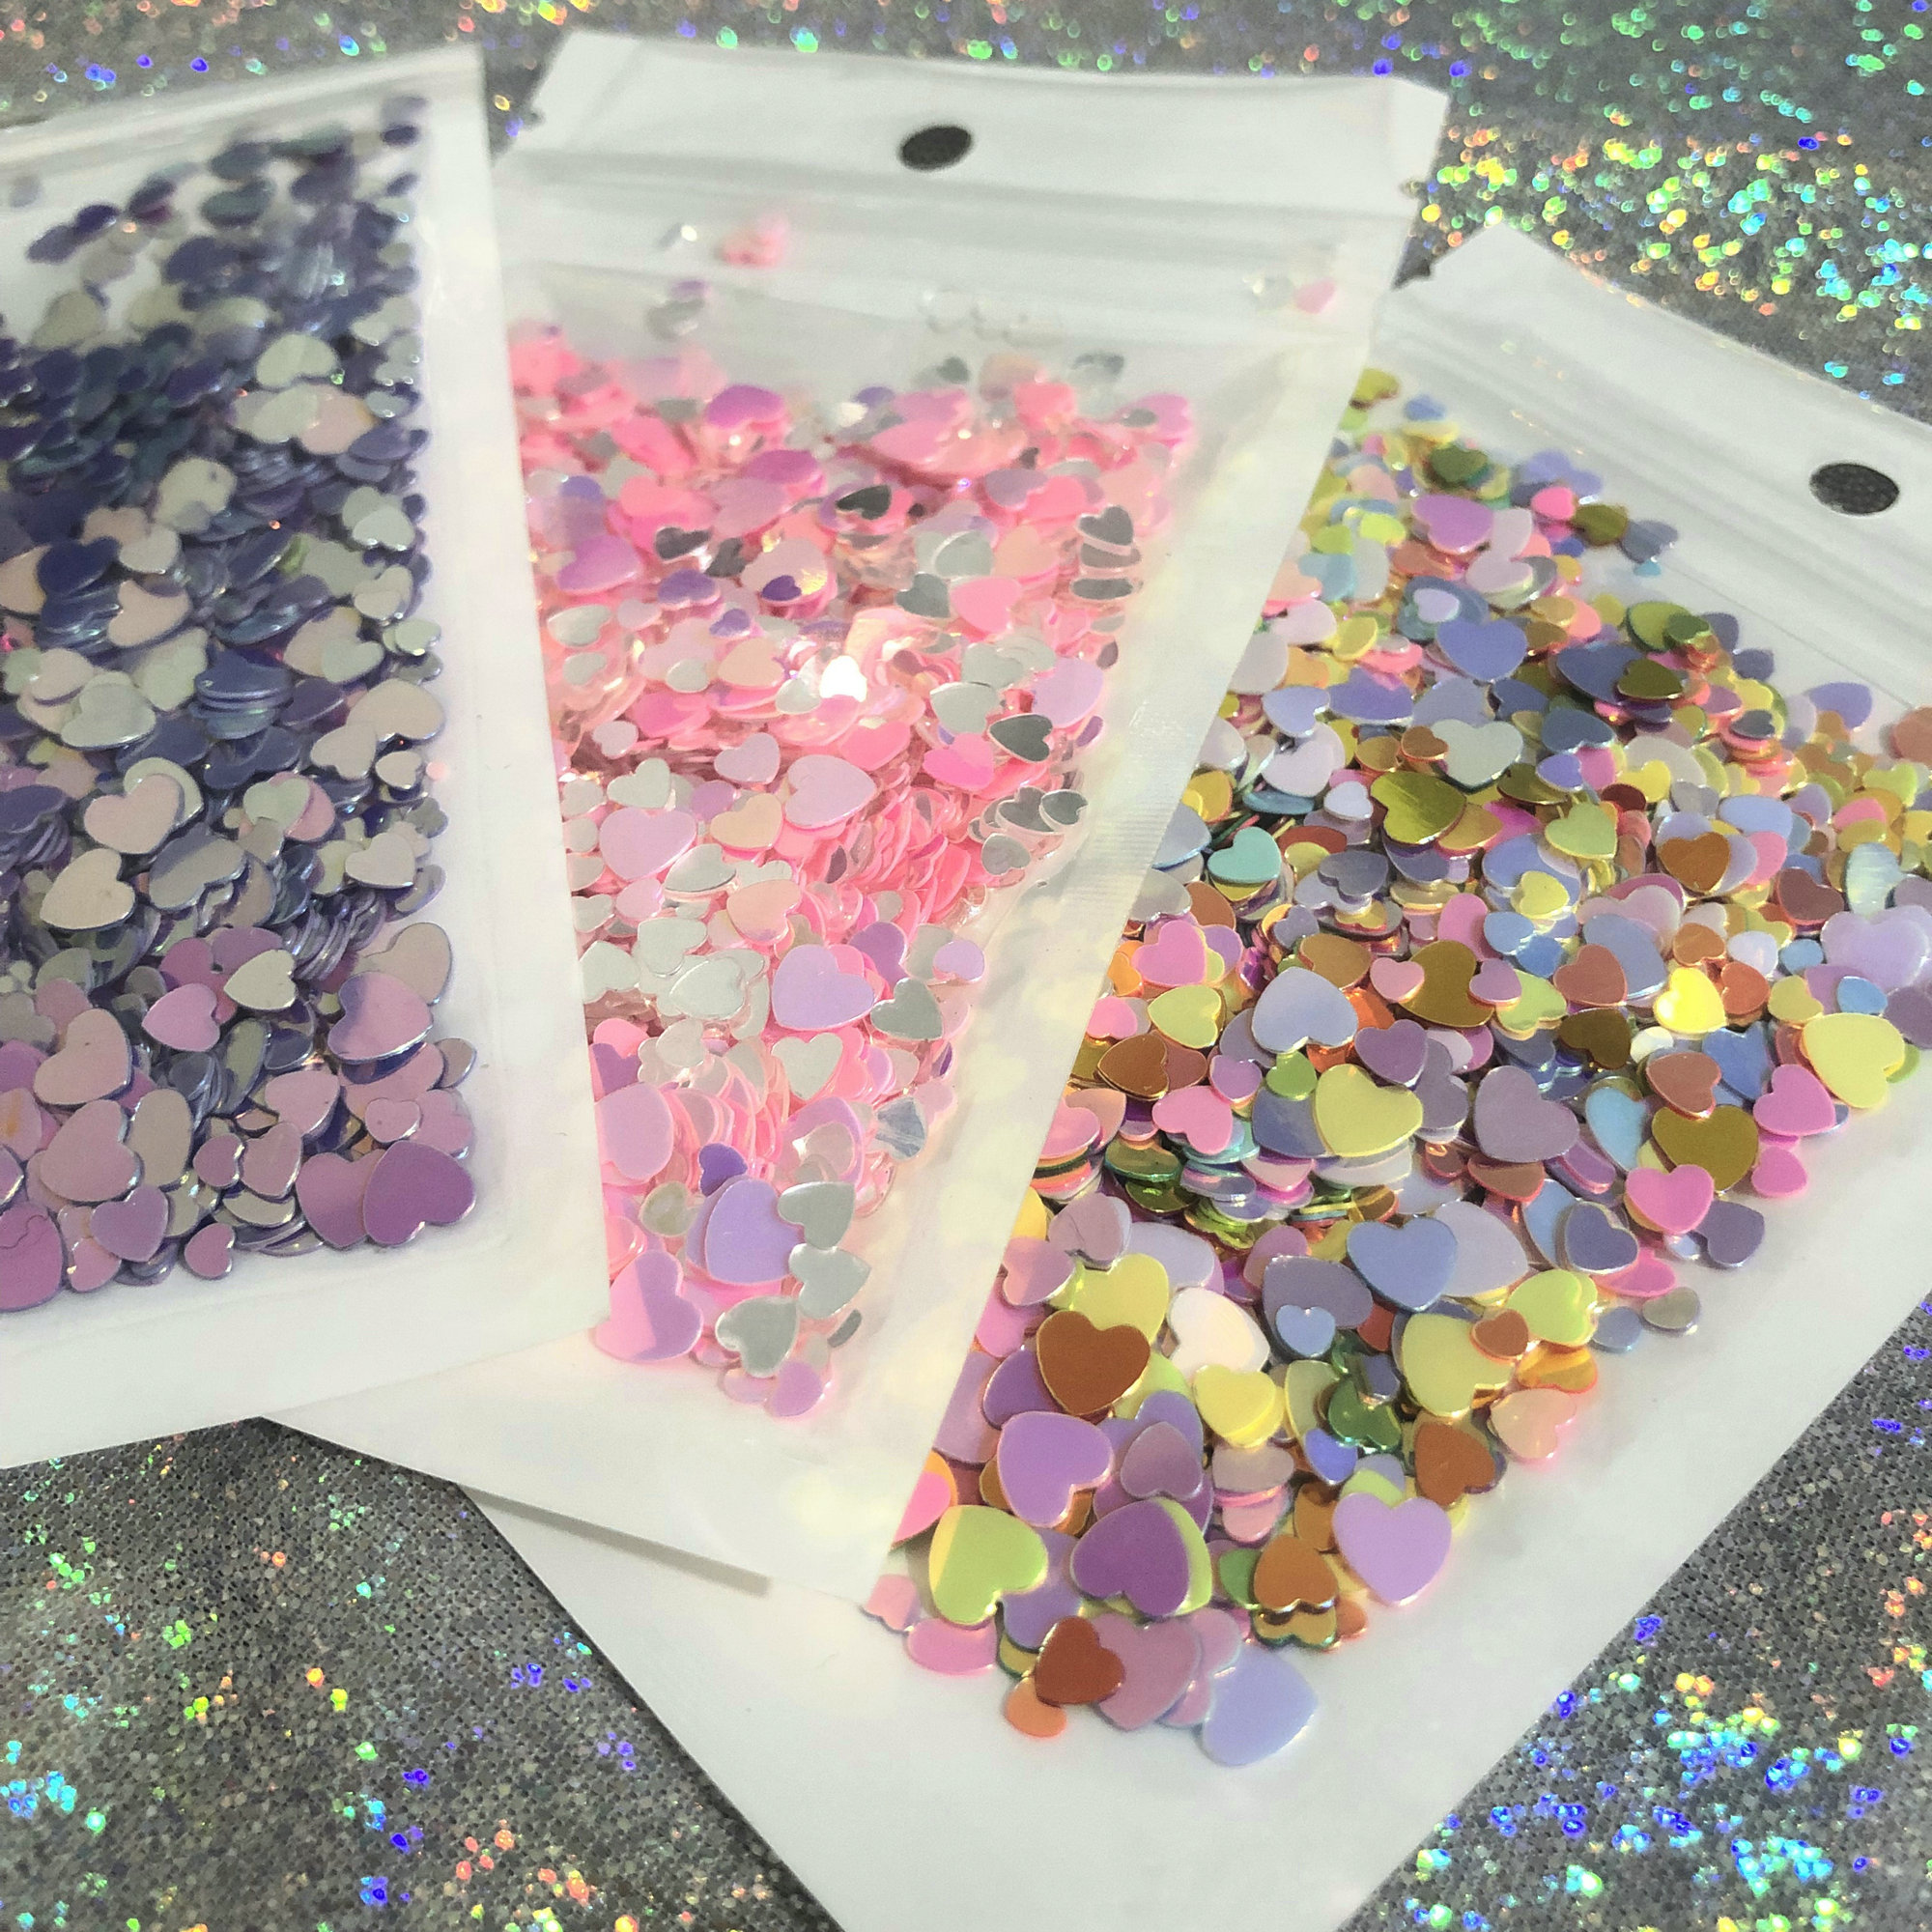 Slime charms Mix Charms Shiny Fillings Puffy Heart Cuts Decor Slime 9